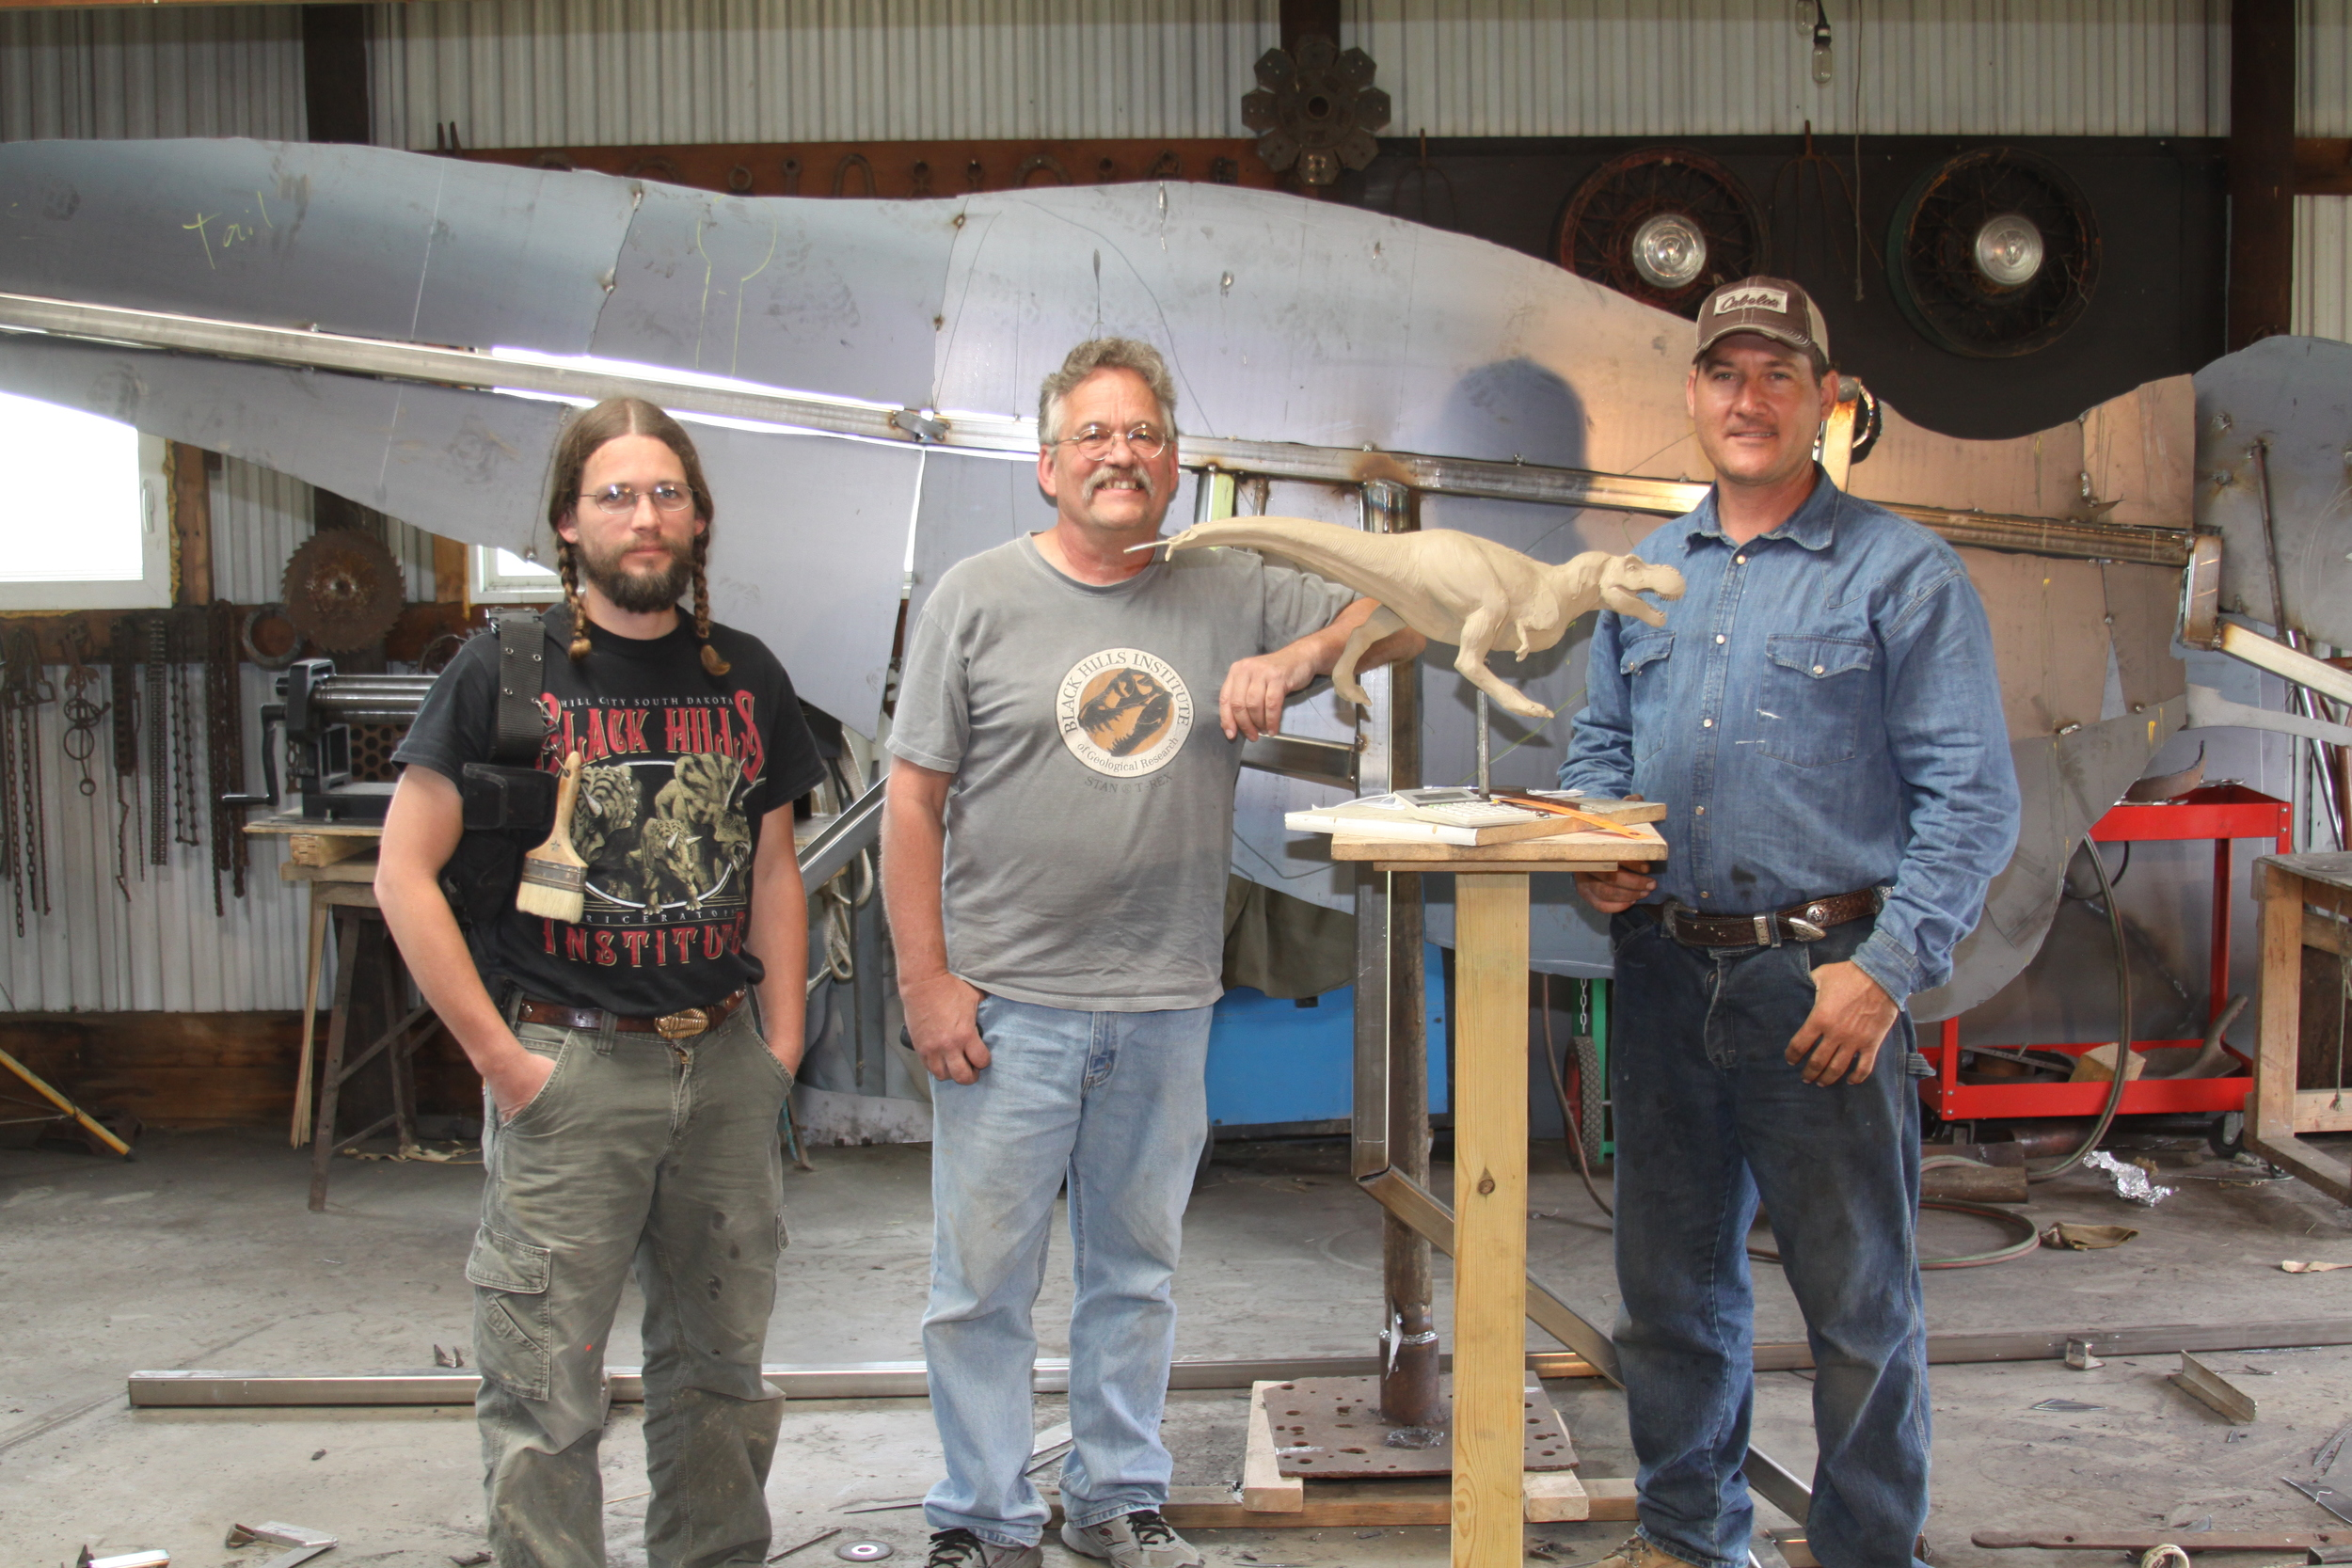 Pete Larson and his son stopped by the shop to help check out the T-rex in progress.